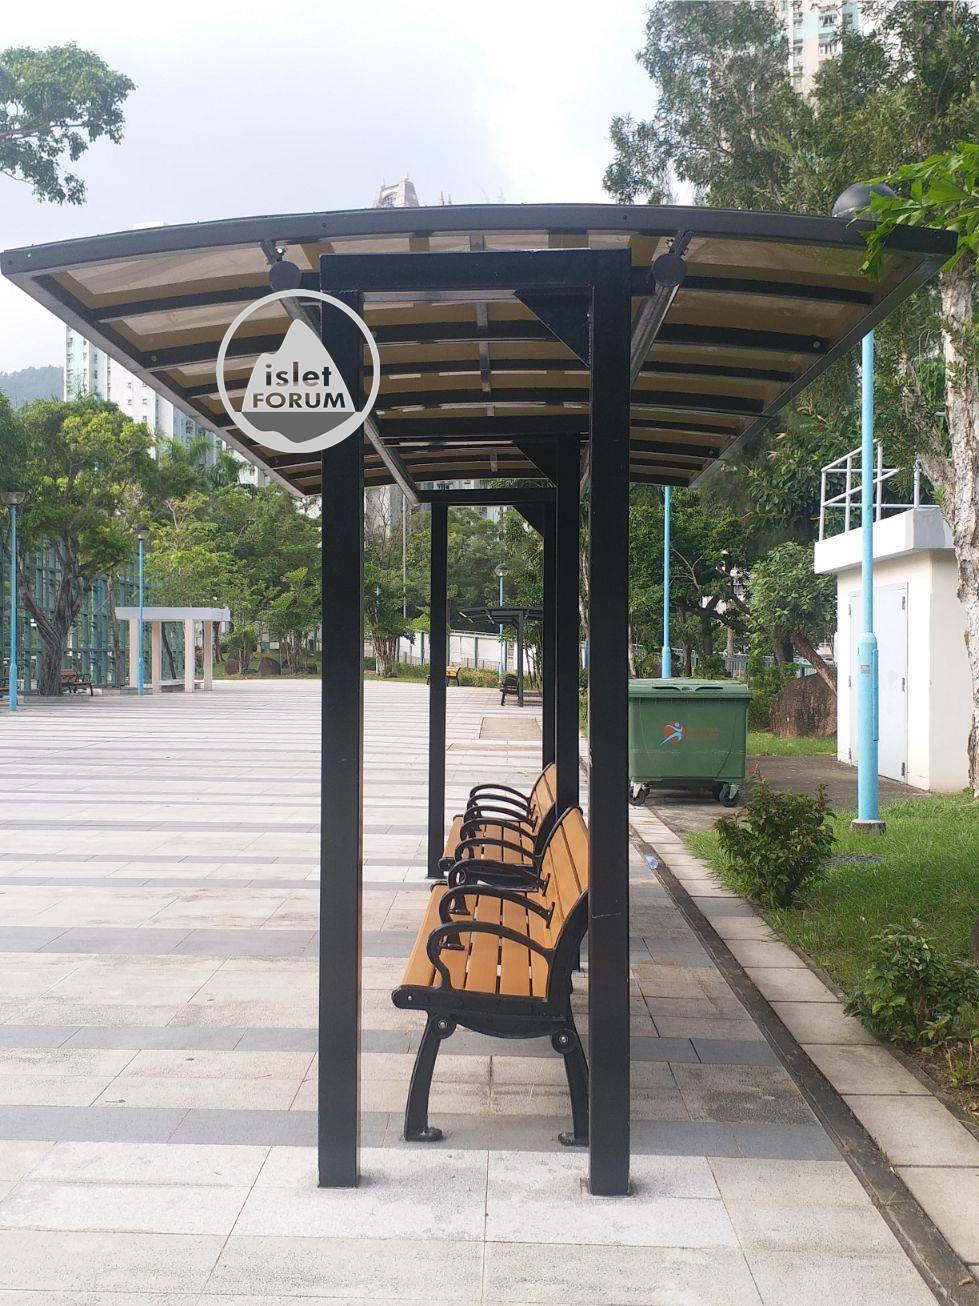 聯合道公園junction road park (5).jpg